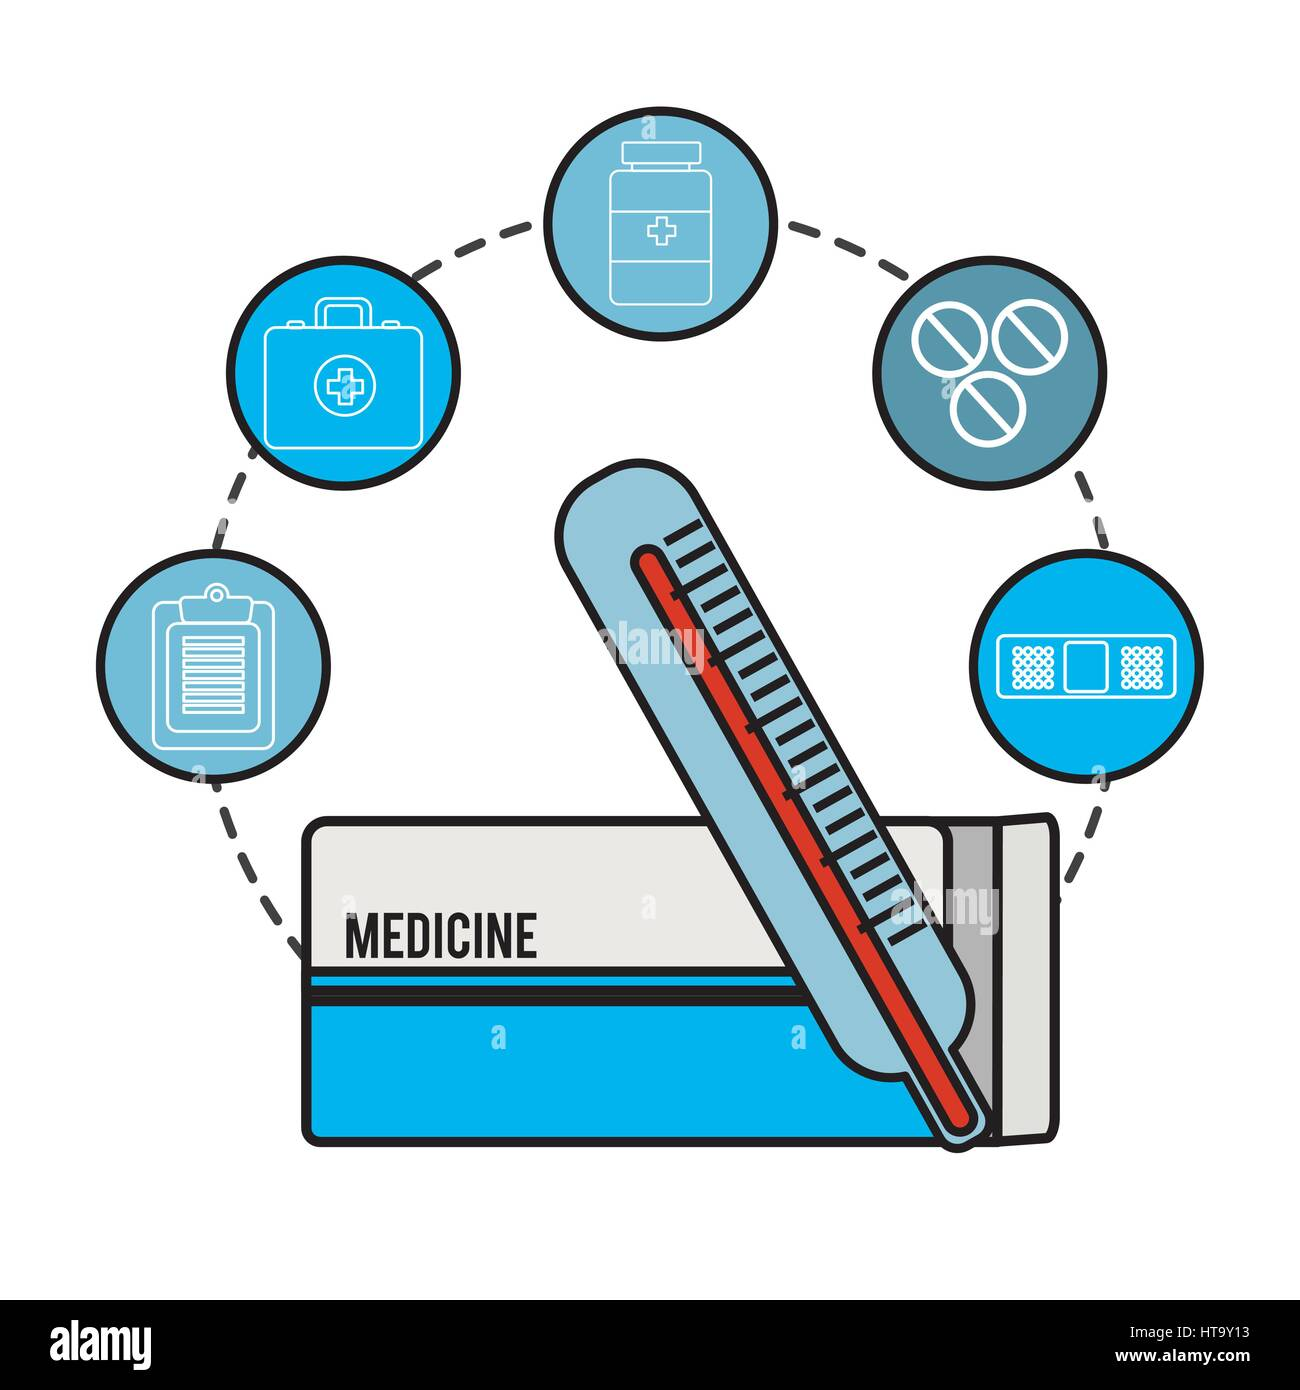 hospital tools and first aid icon Stock Vector Art & Illustration ...